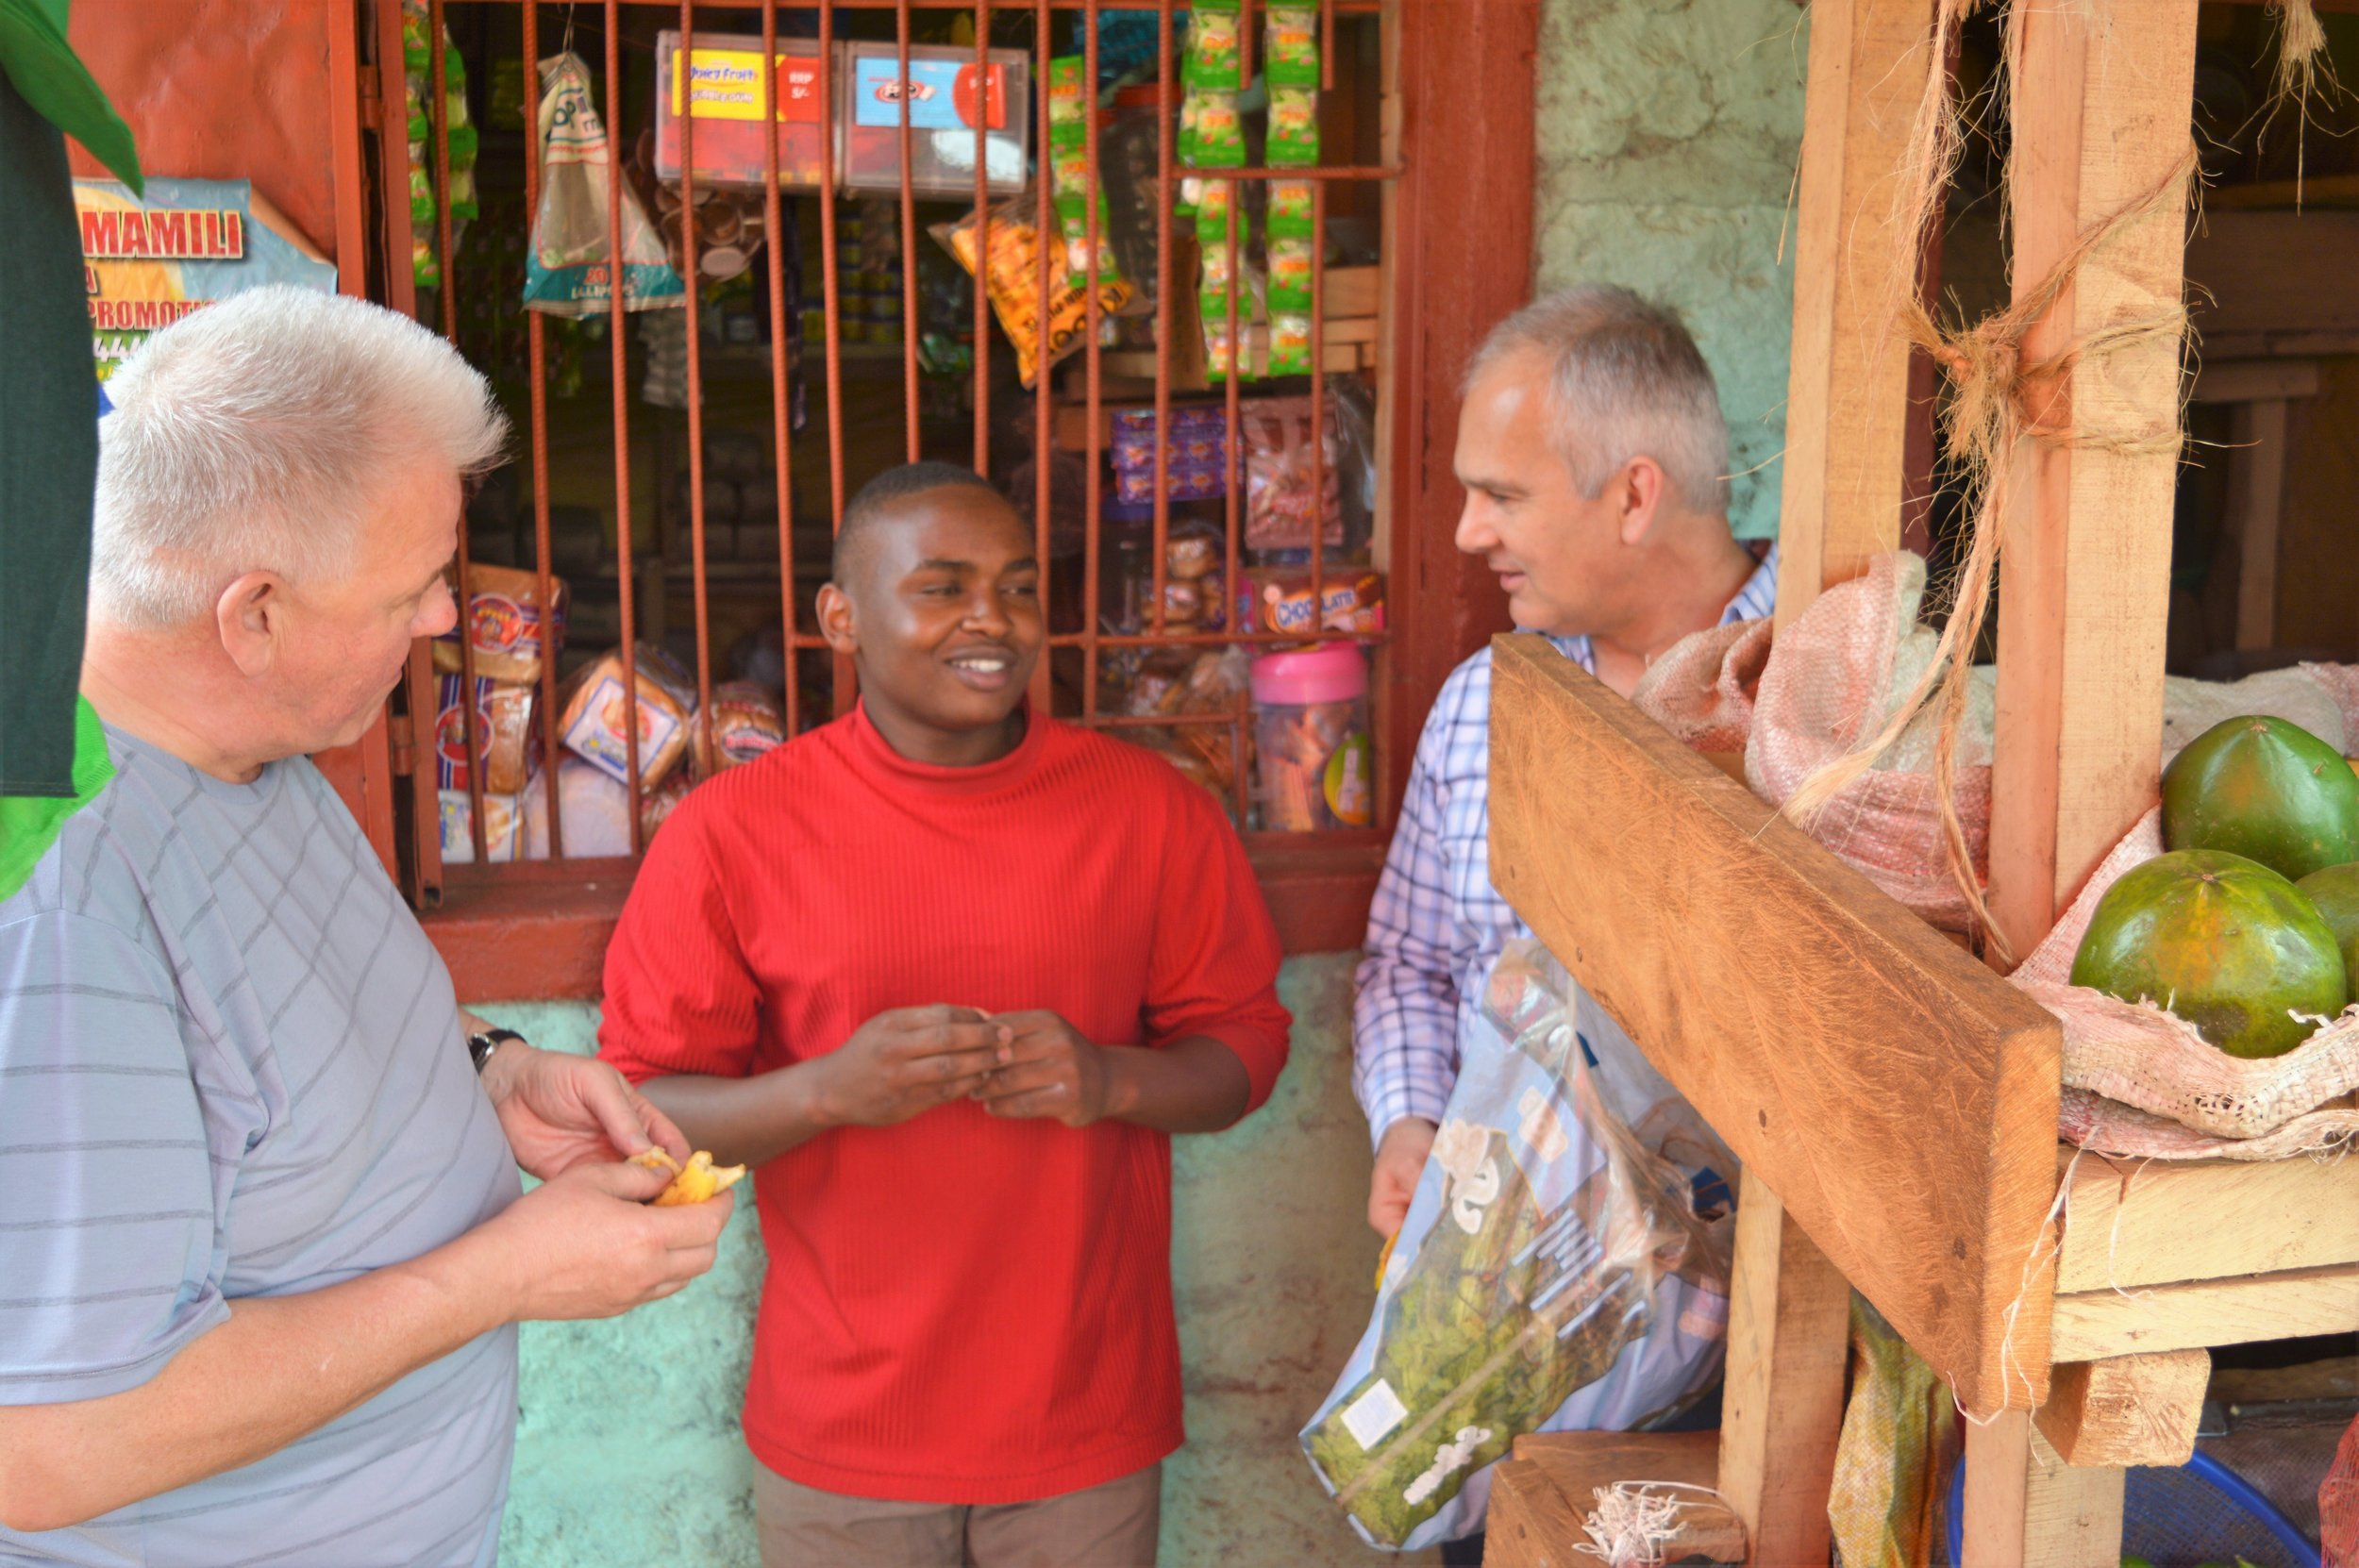 Simon and Dan, two of our Advisors, talking to Peter - an entrepreneur working with TechnoServe in Kenya